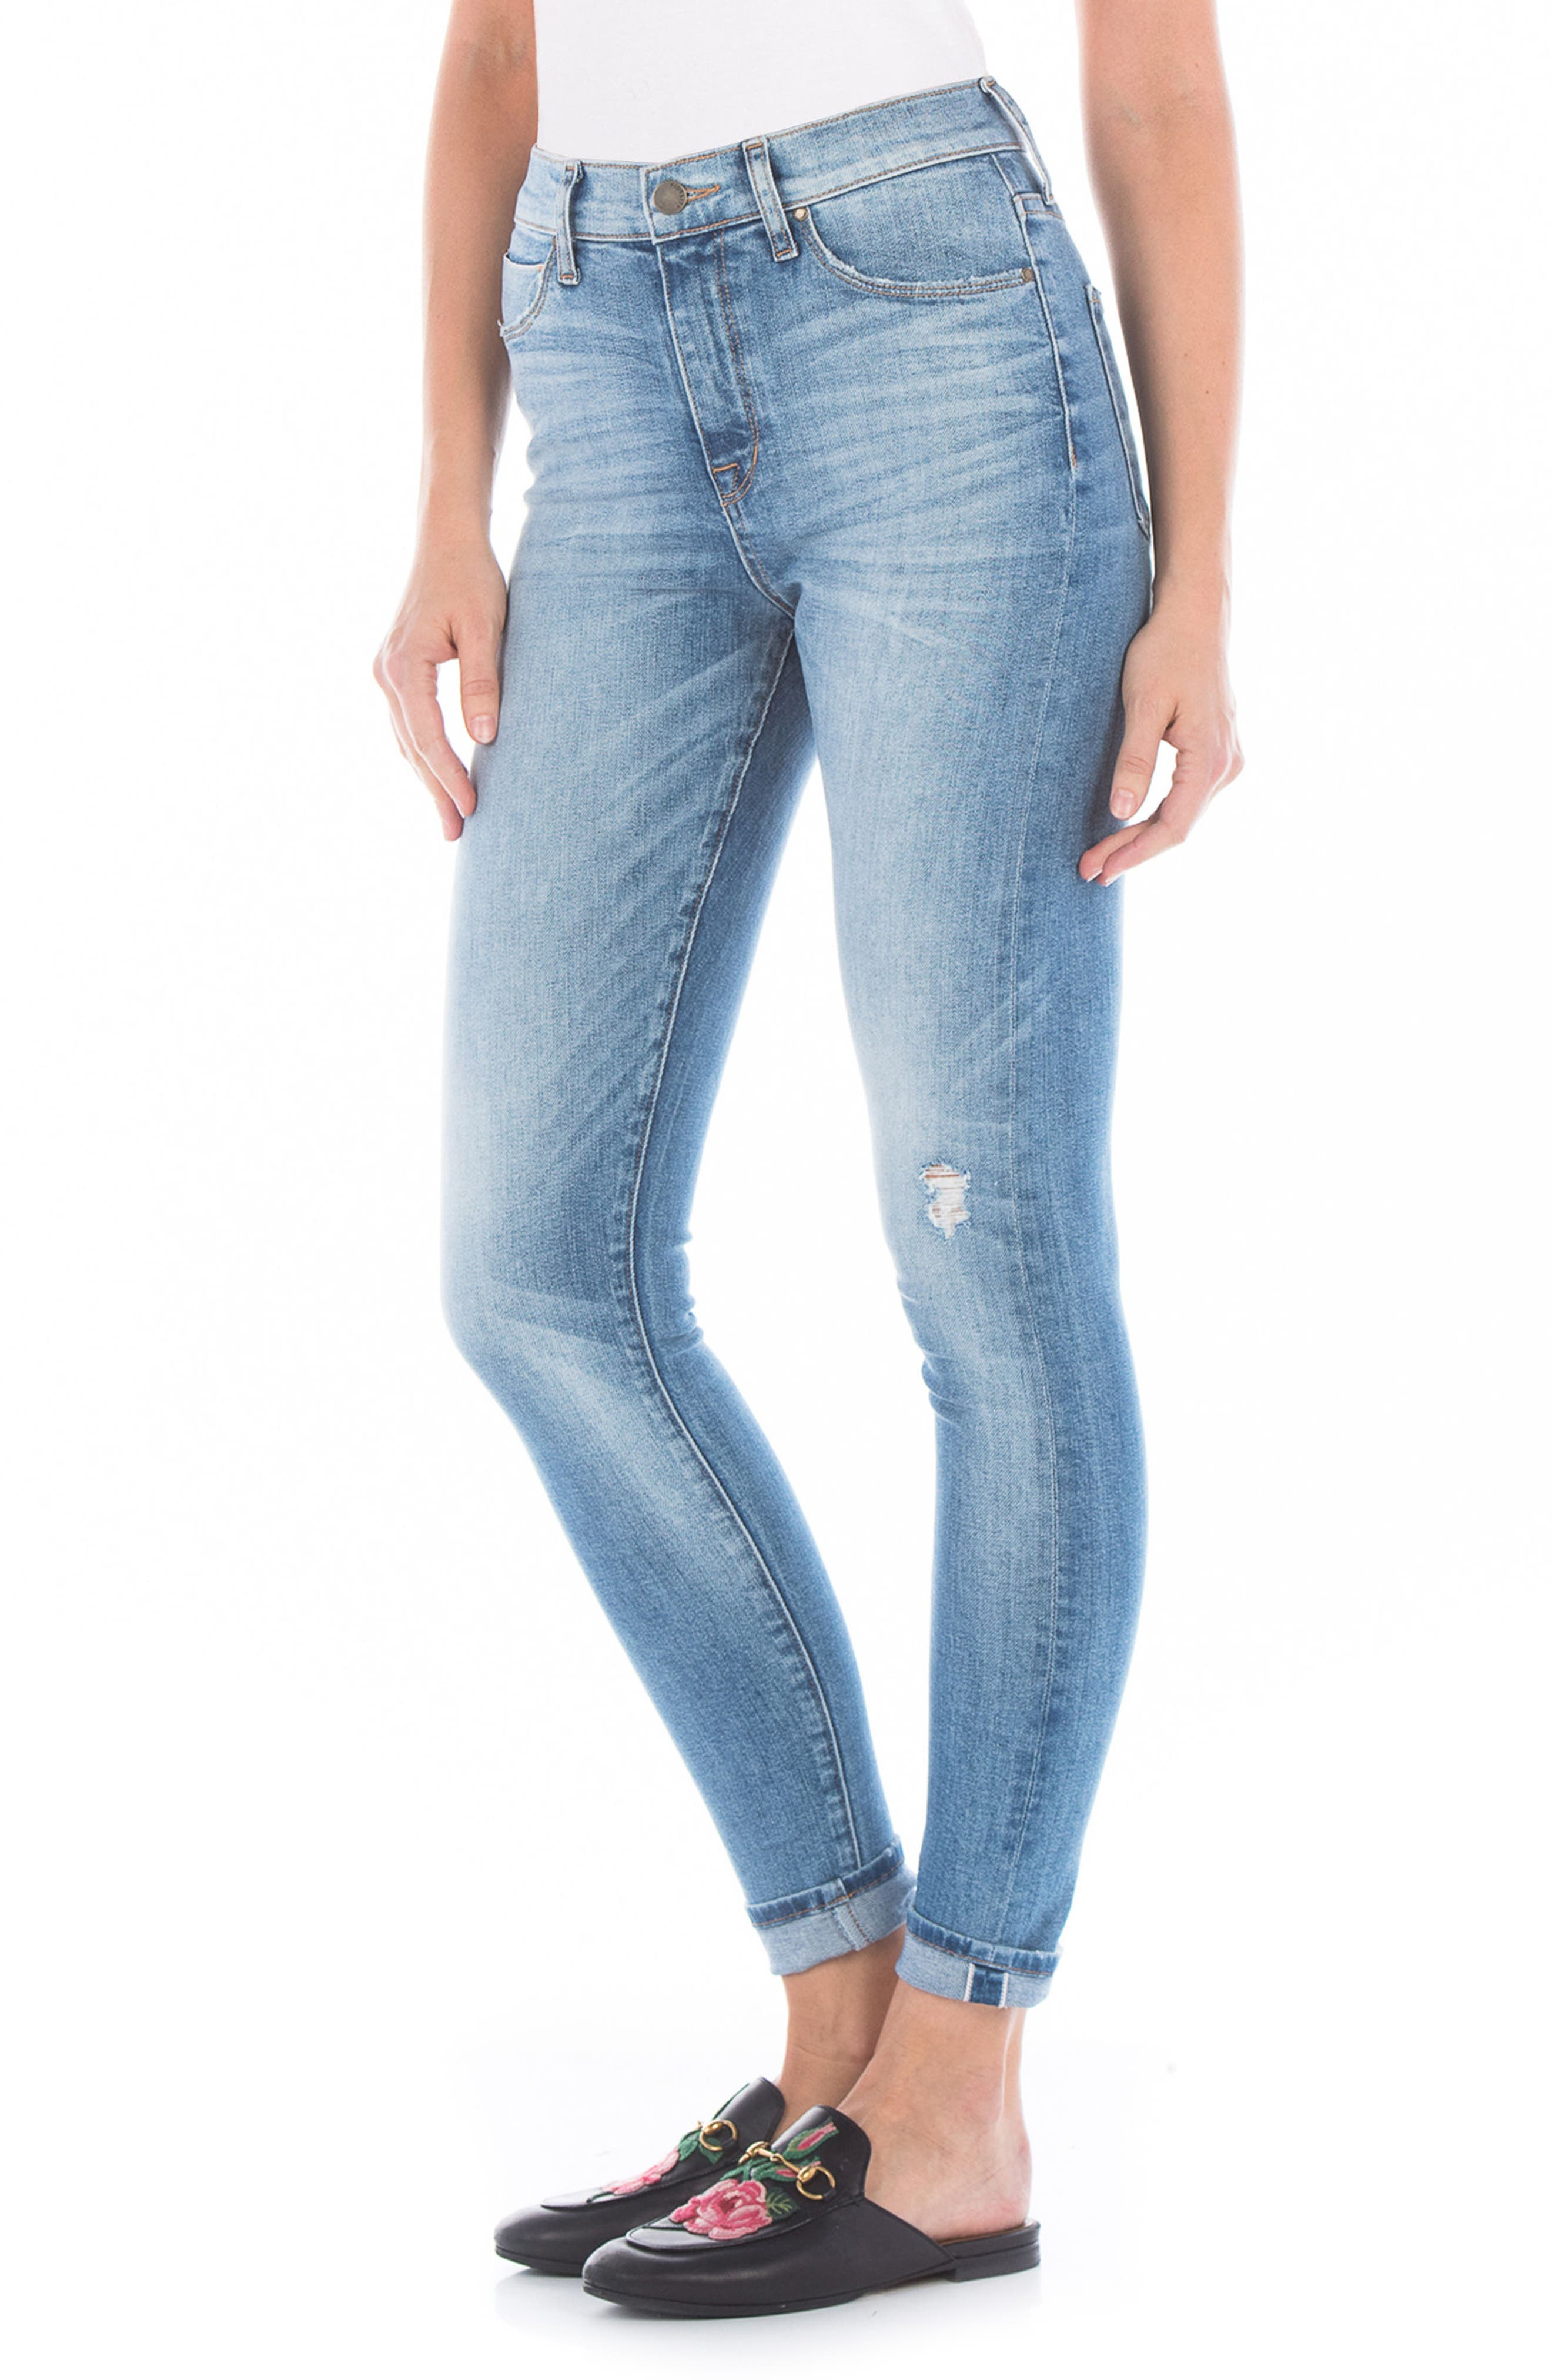 Gwen High Waist Skinny Jeans,                             Alternate thumbnail 3, color,                             76 Summer